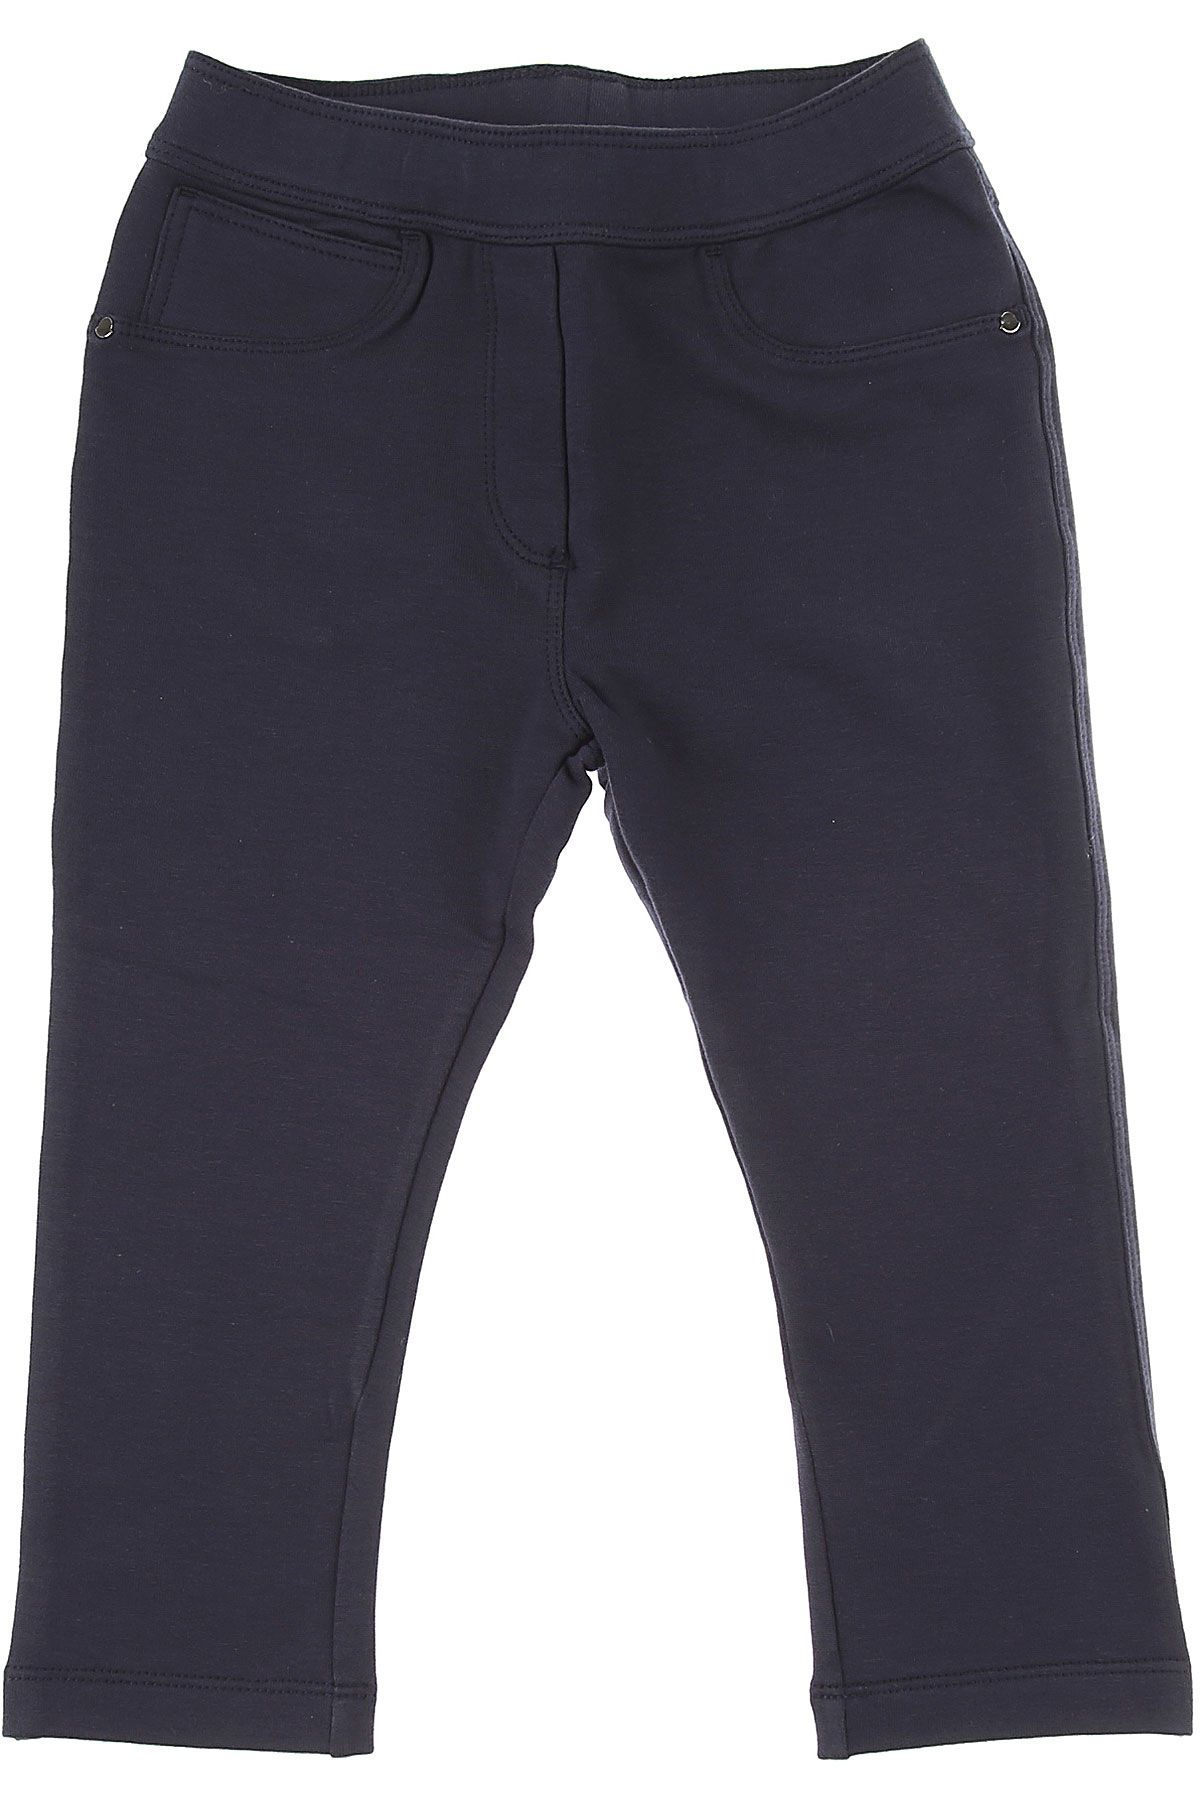 Moncler Baby Pants for Girls On Sale in Outlet, navy, Cotton, 2019, 24M 2Y